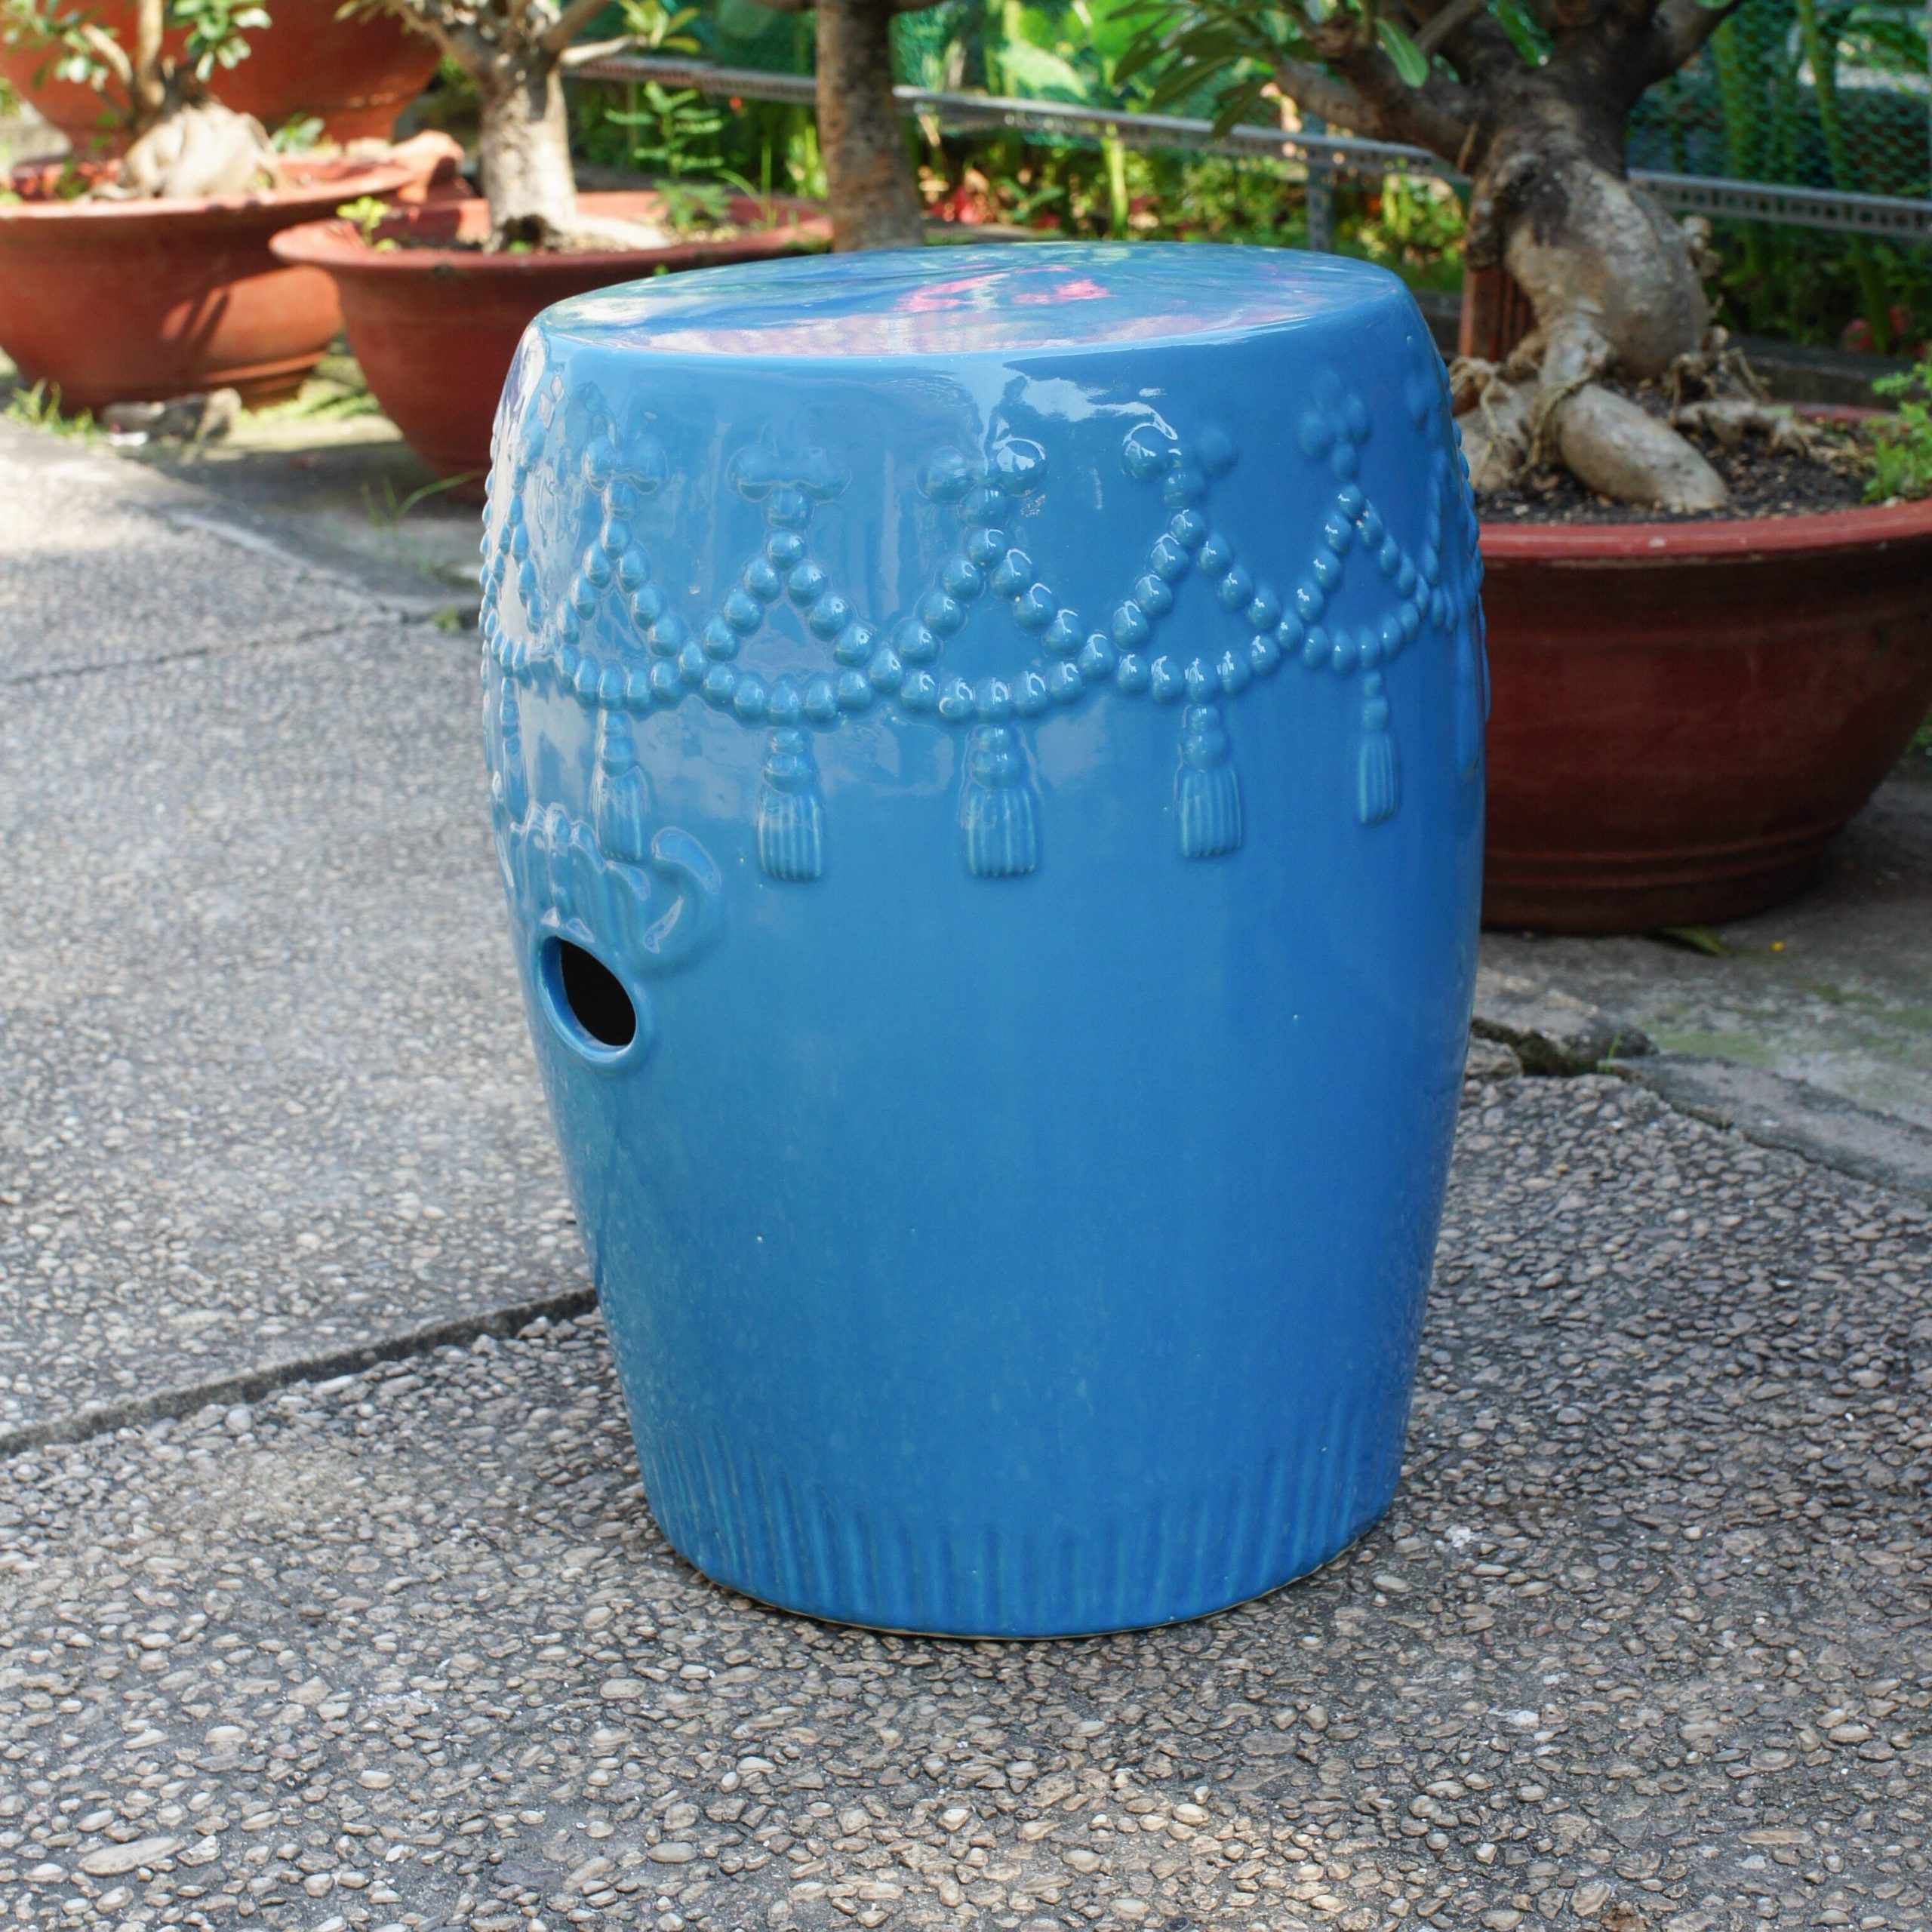 Oakside Ceramic Garden Stools Within Well Known Alonsa Drum Ceramic Garden Stool (View 3 of 30)